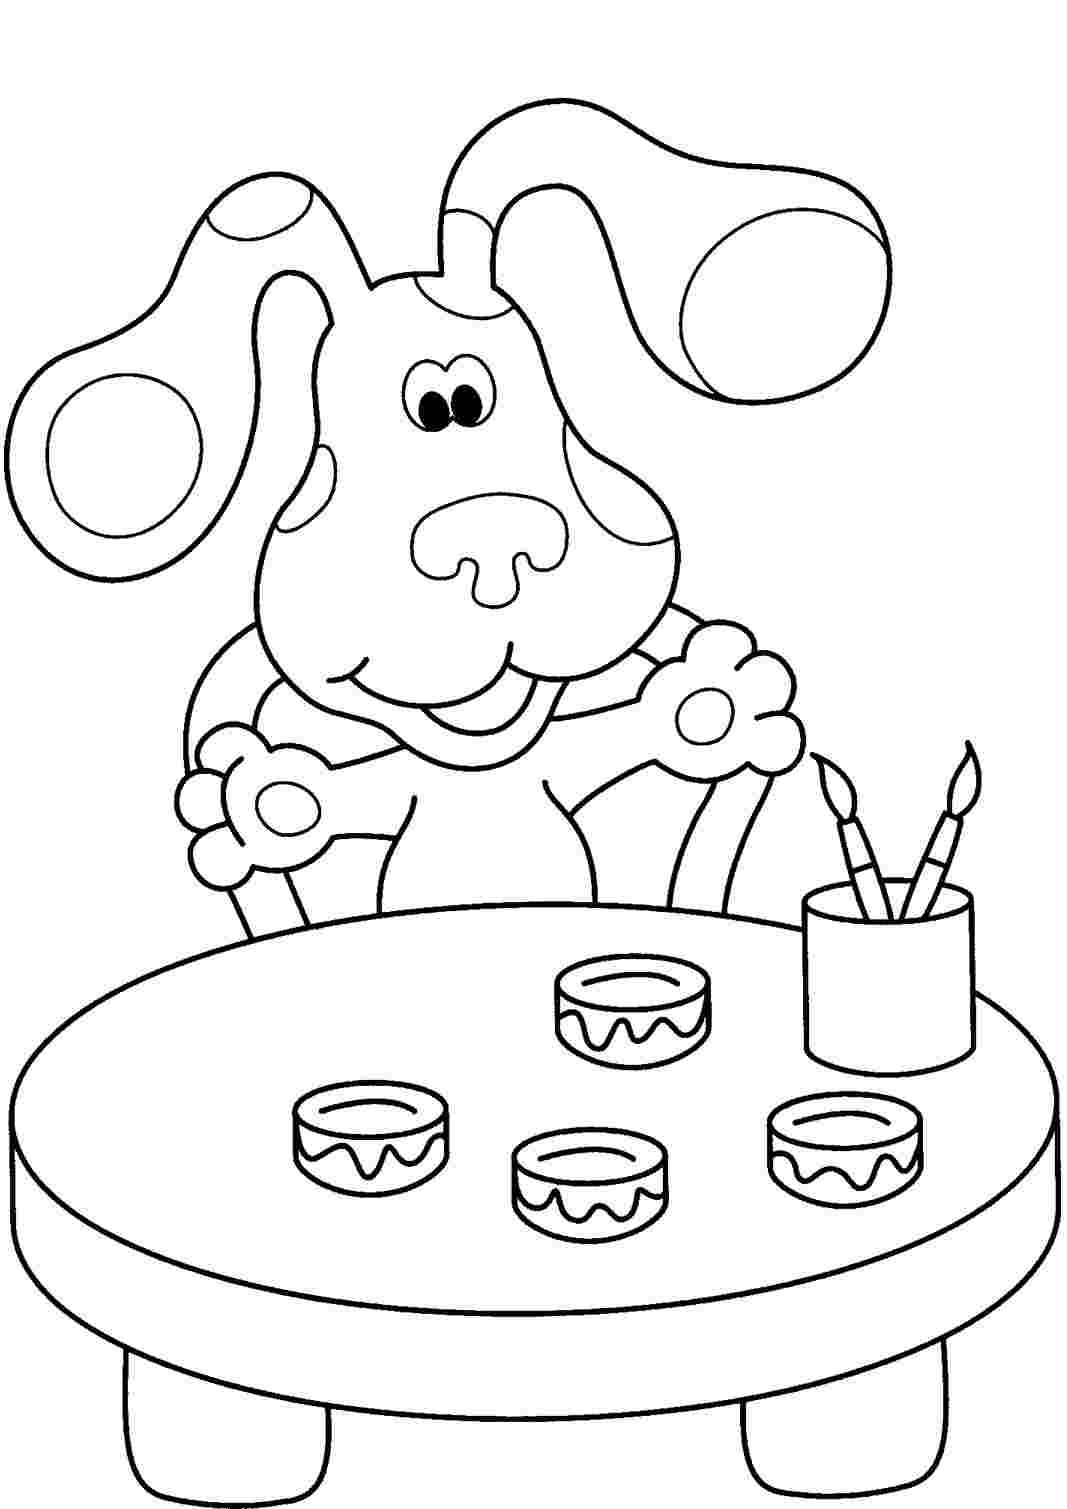 Blue S Clues Coloring Pages Blue S Clues Is An American Live Action Animated Educational Chi Nick Jr Coloring Pages Toddler Coloring Book Coloring Books